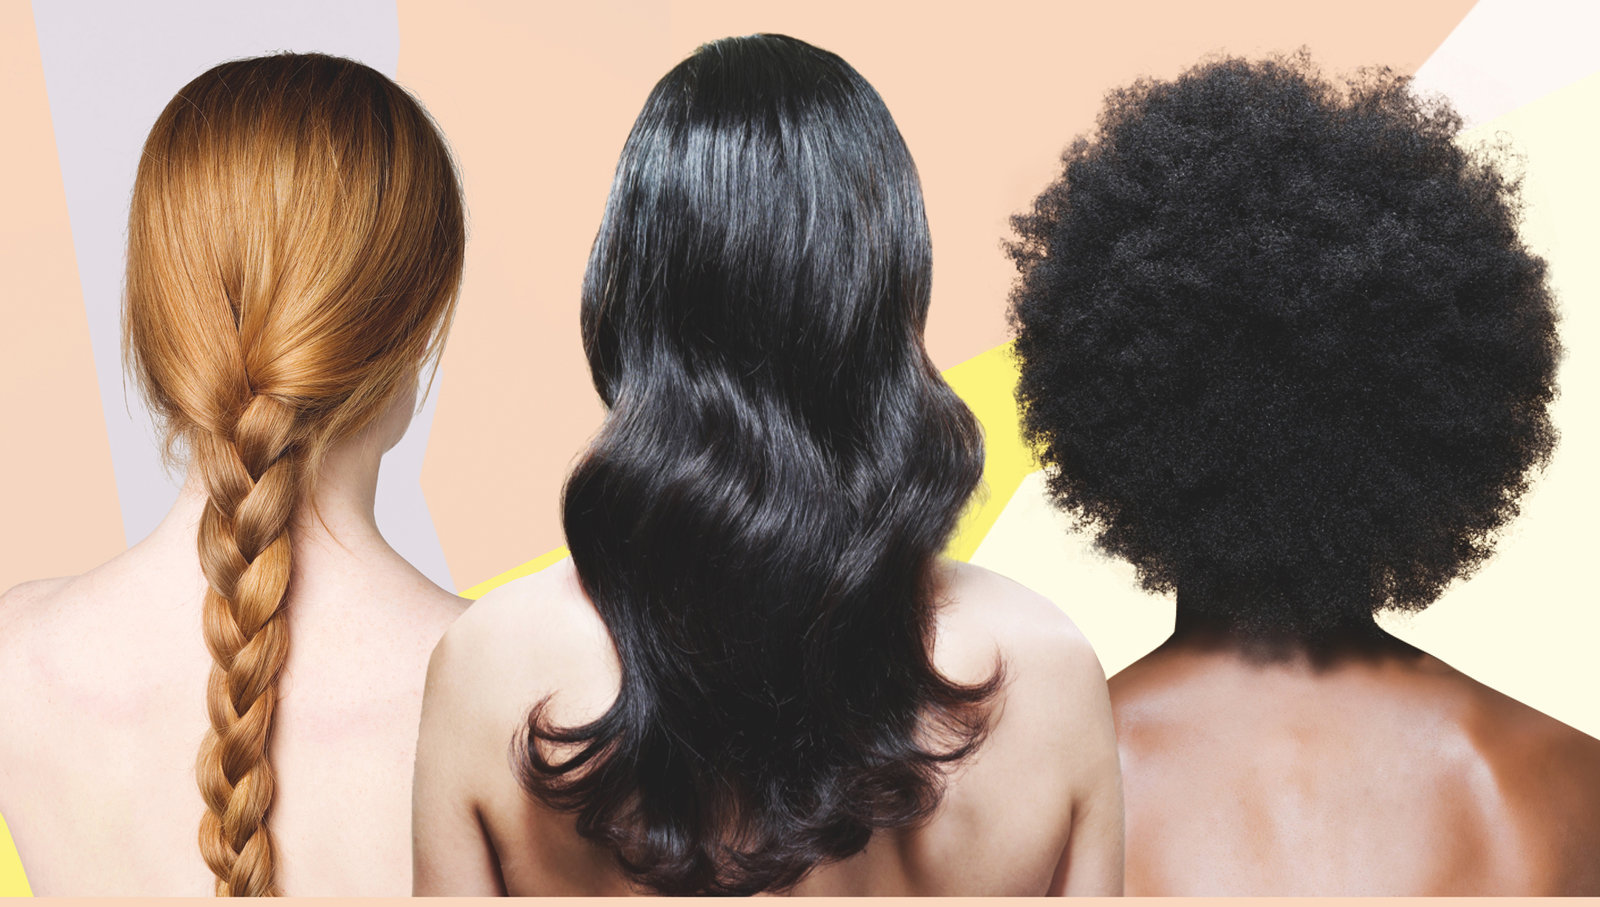 instyle's survey of american women and hair | instyle